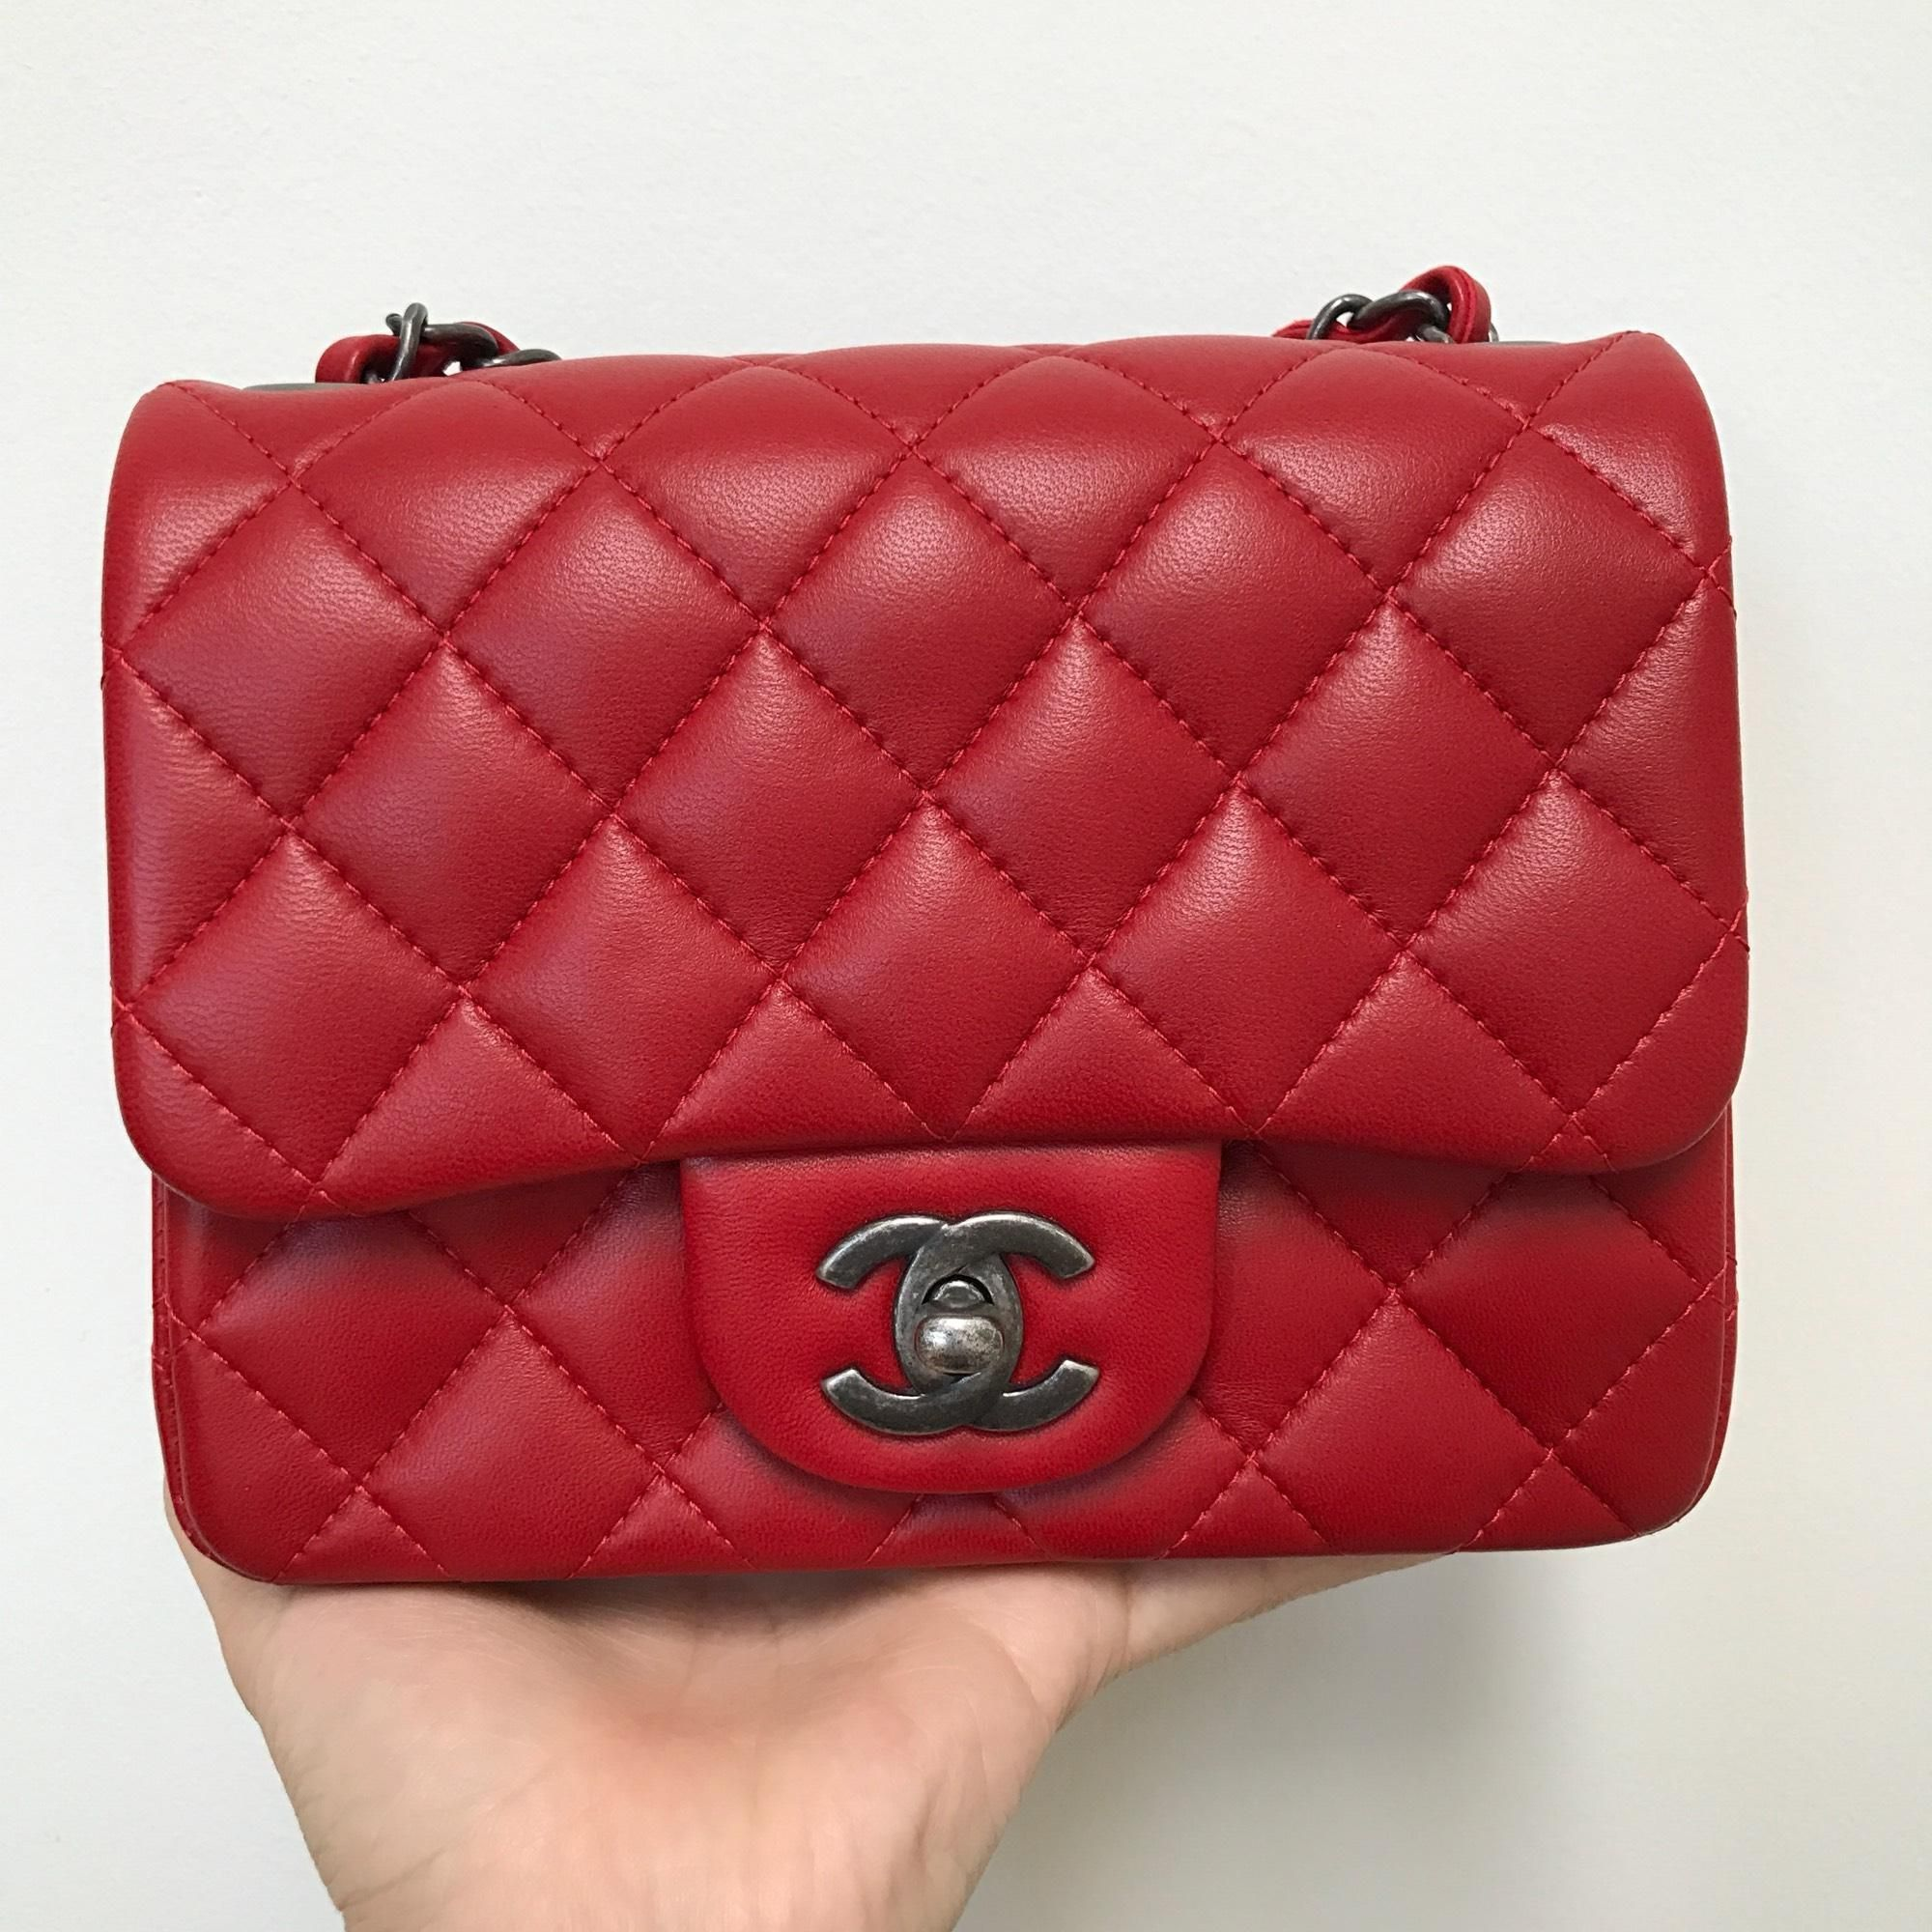 427ca6021f4 Get the trendiest Cross Body Bag of the season! The Chanel Mini Flap Red Cross  Body Bag is a top 10 member favorite on Tradesy.